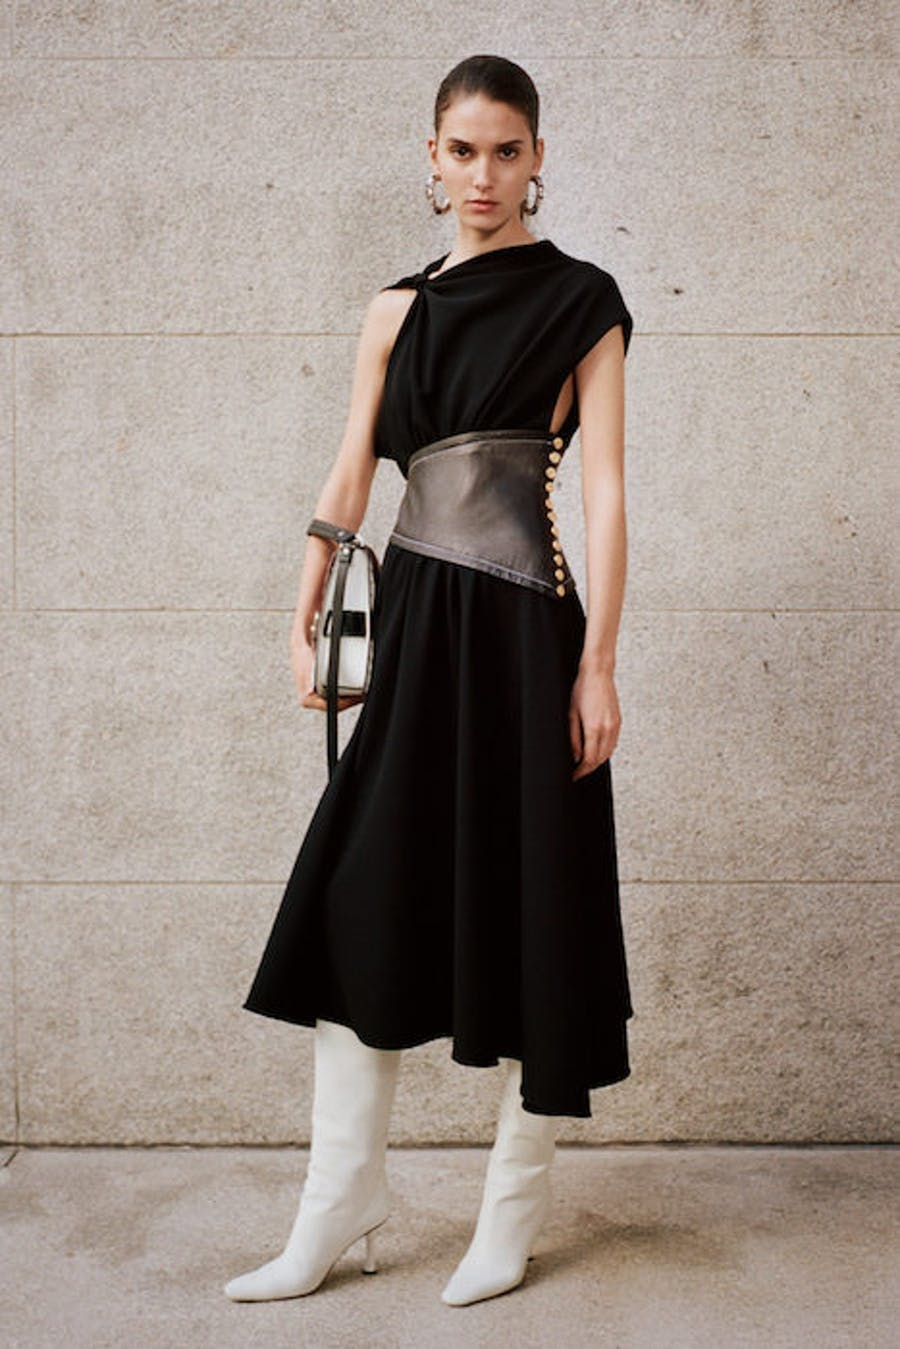 Proenza Schouler Belted Draped Dress in Black with Leather High Boots in White Leather Pre Fall 20